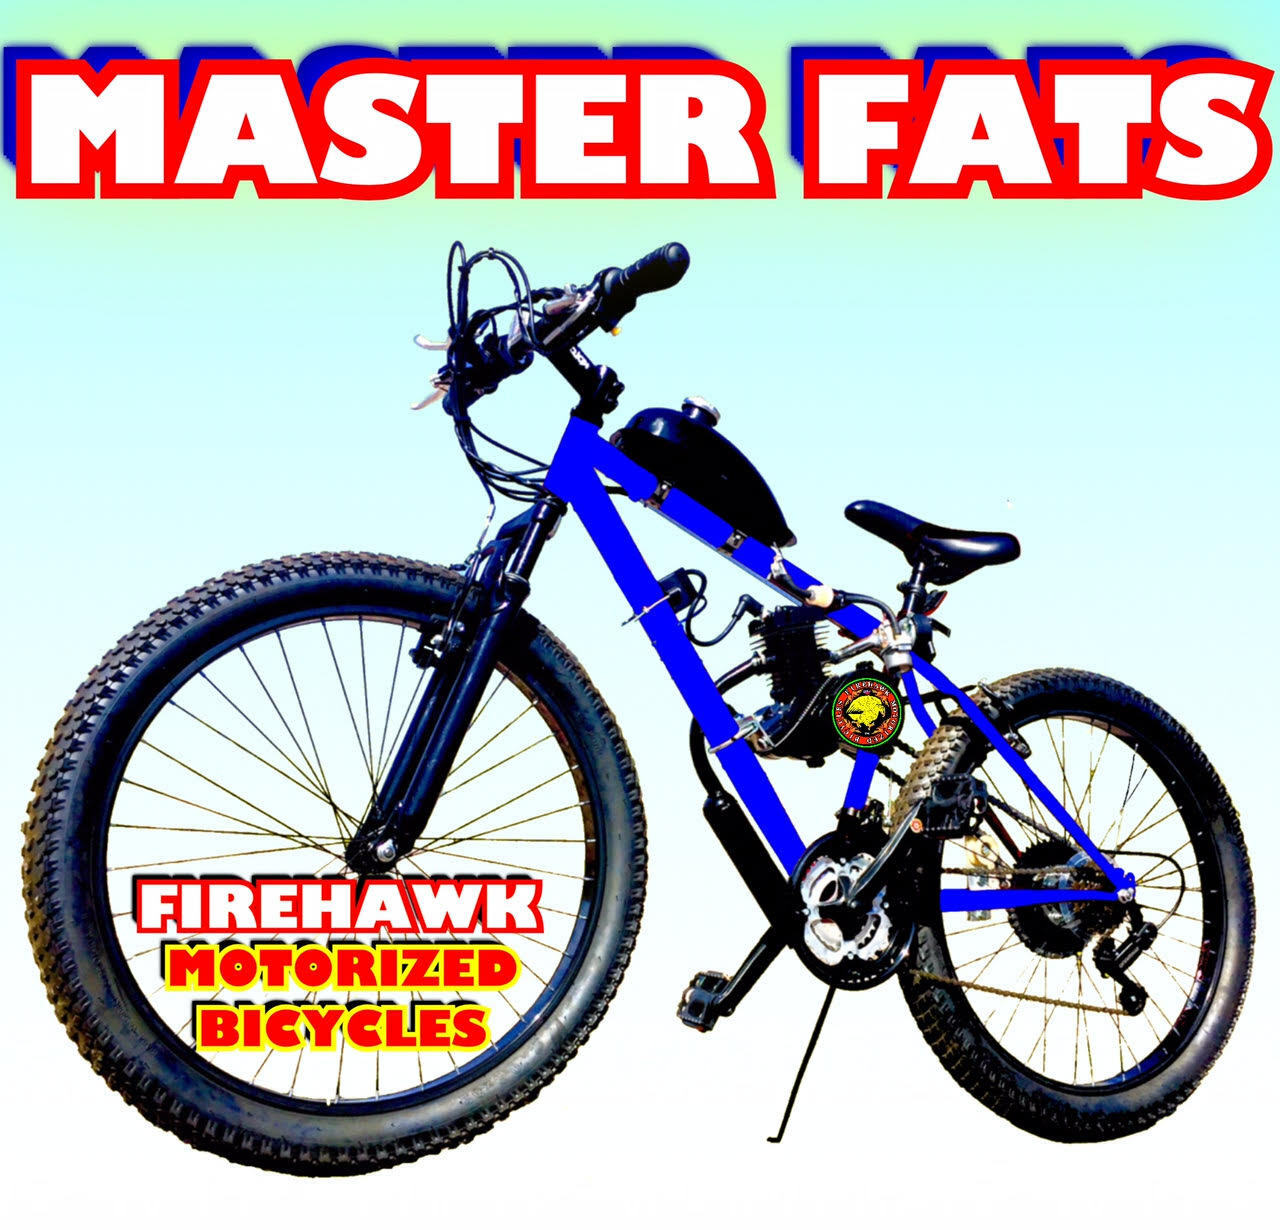 nuovo MASTER FATS 50 80CC GAS MOTOR MOTORIZED & 26 BIKE BICYCLE SCOOTER MOPED KIT